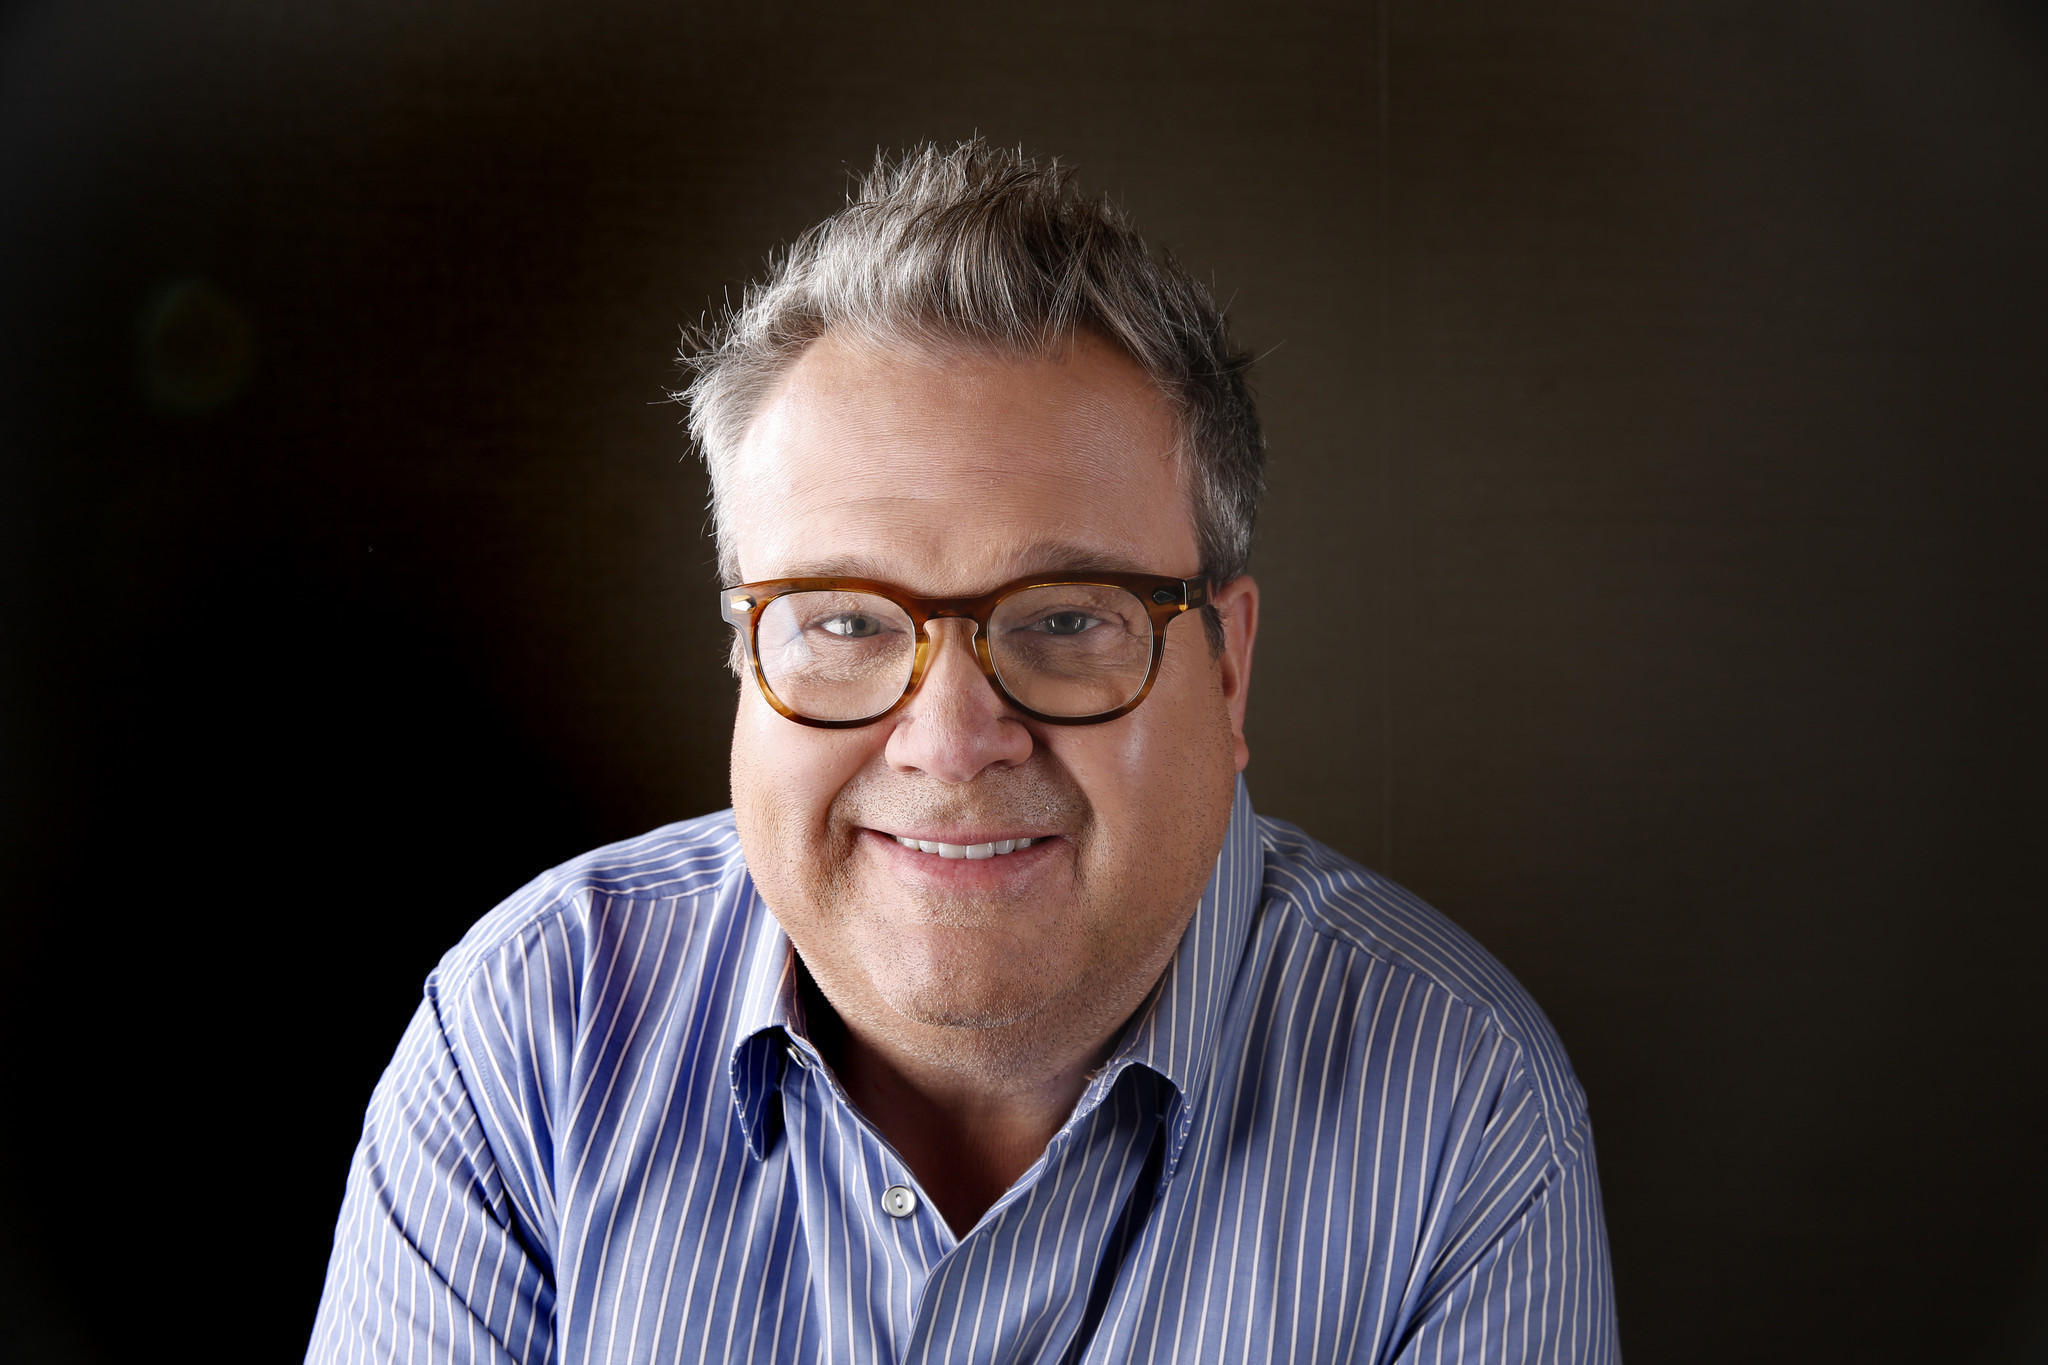 39 Modern Family 39 S 39 Eric Stonestreet Put A Lot Of Heart Into